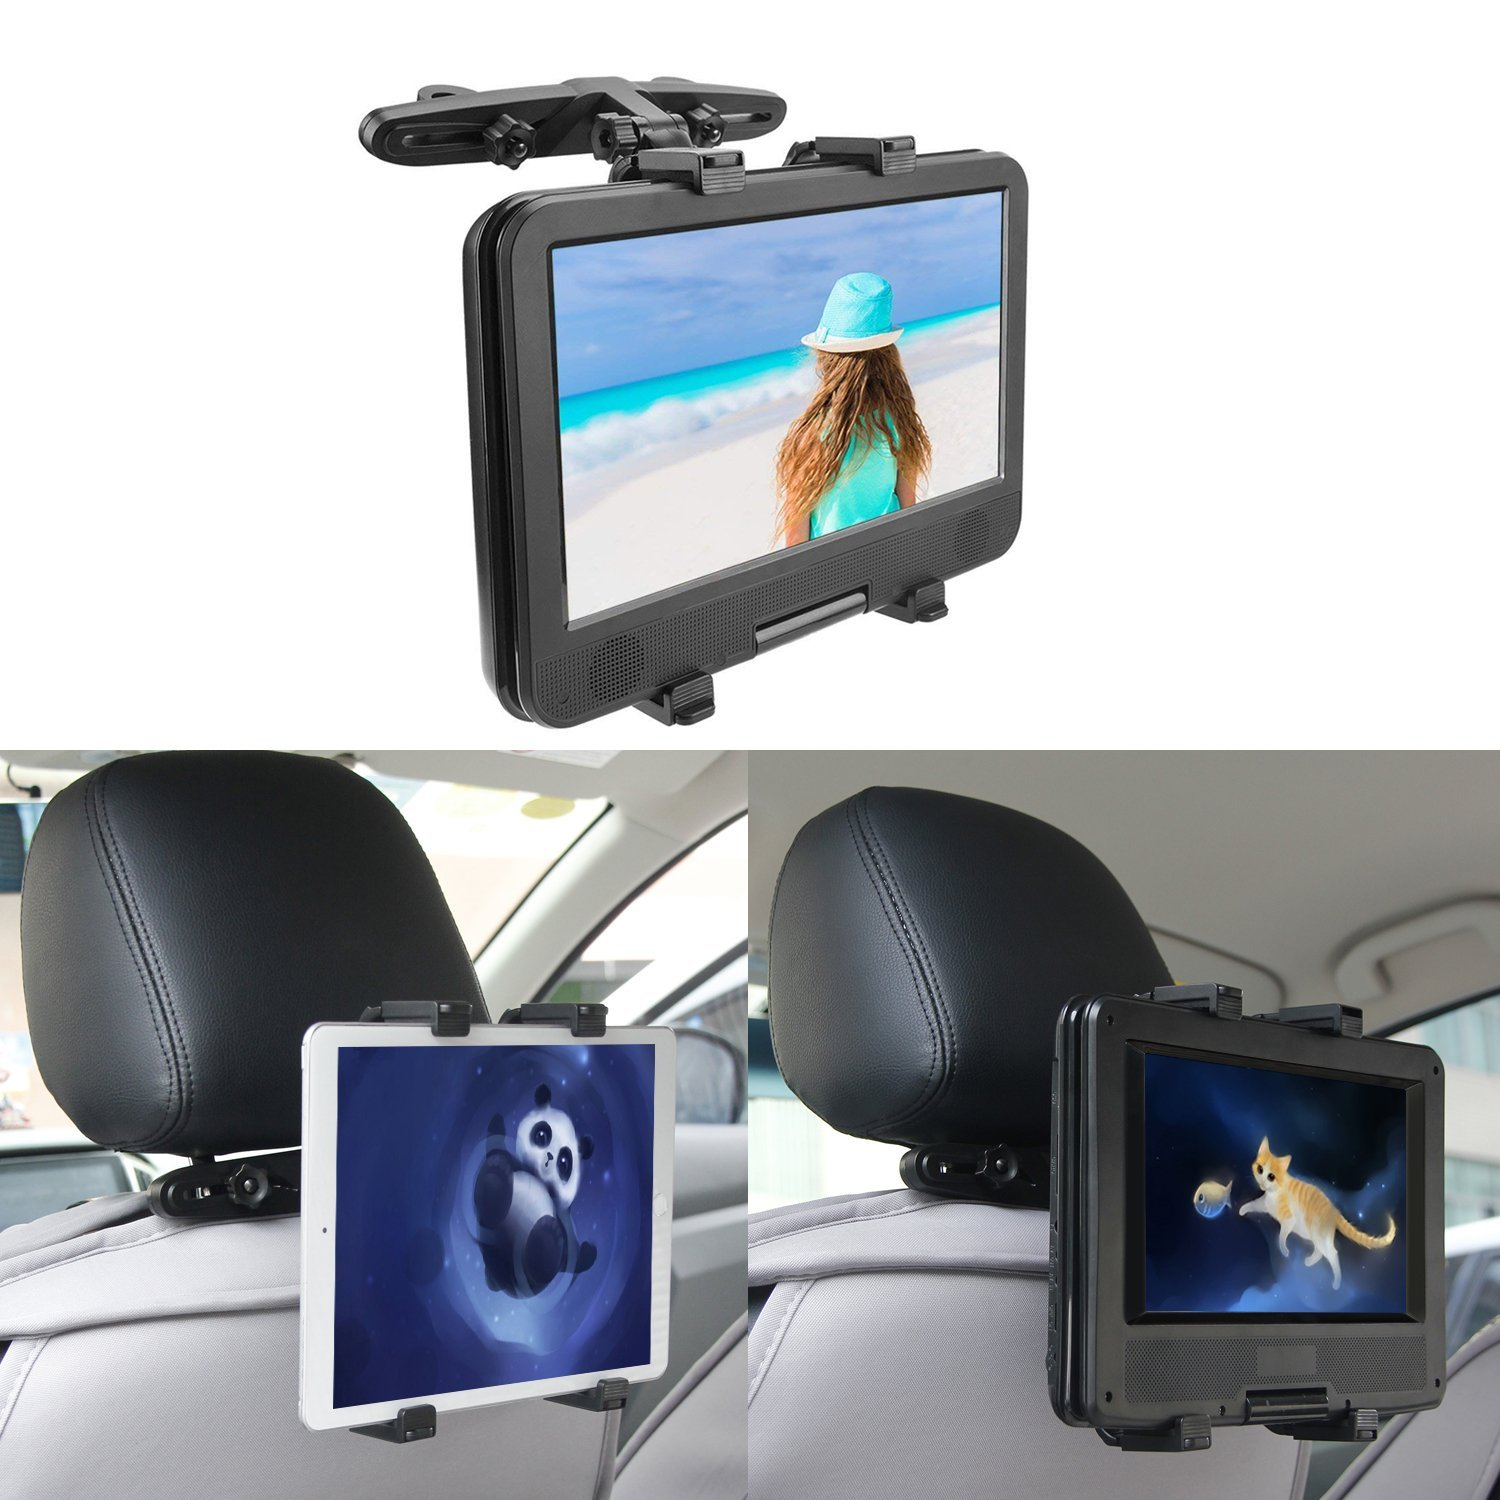 COOAU Adjustable iPad Car Holder, Car Backseat Headrest Extension Mountable Holder 7'' to 12'' inch iPad Pro/iPad Air/iPad Mini, Tablets, Samsung Galaxy Tab, Kindle Fire, Portable DVD Players